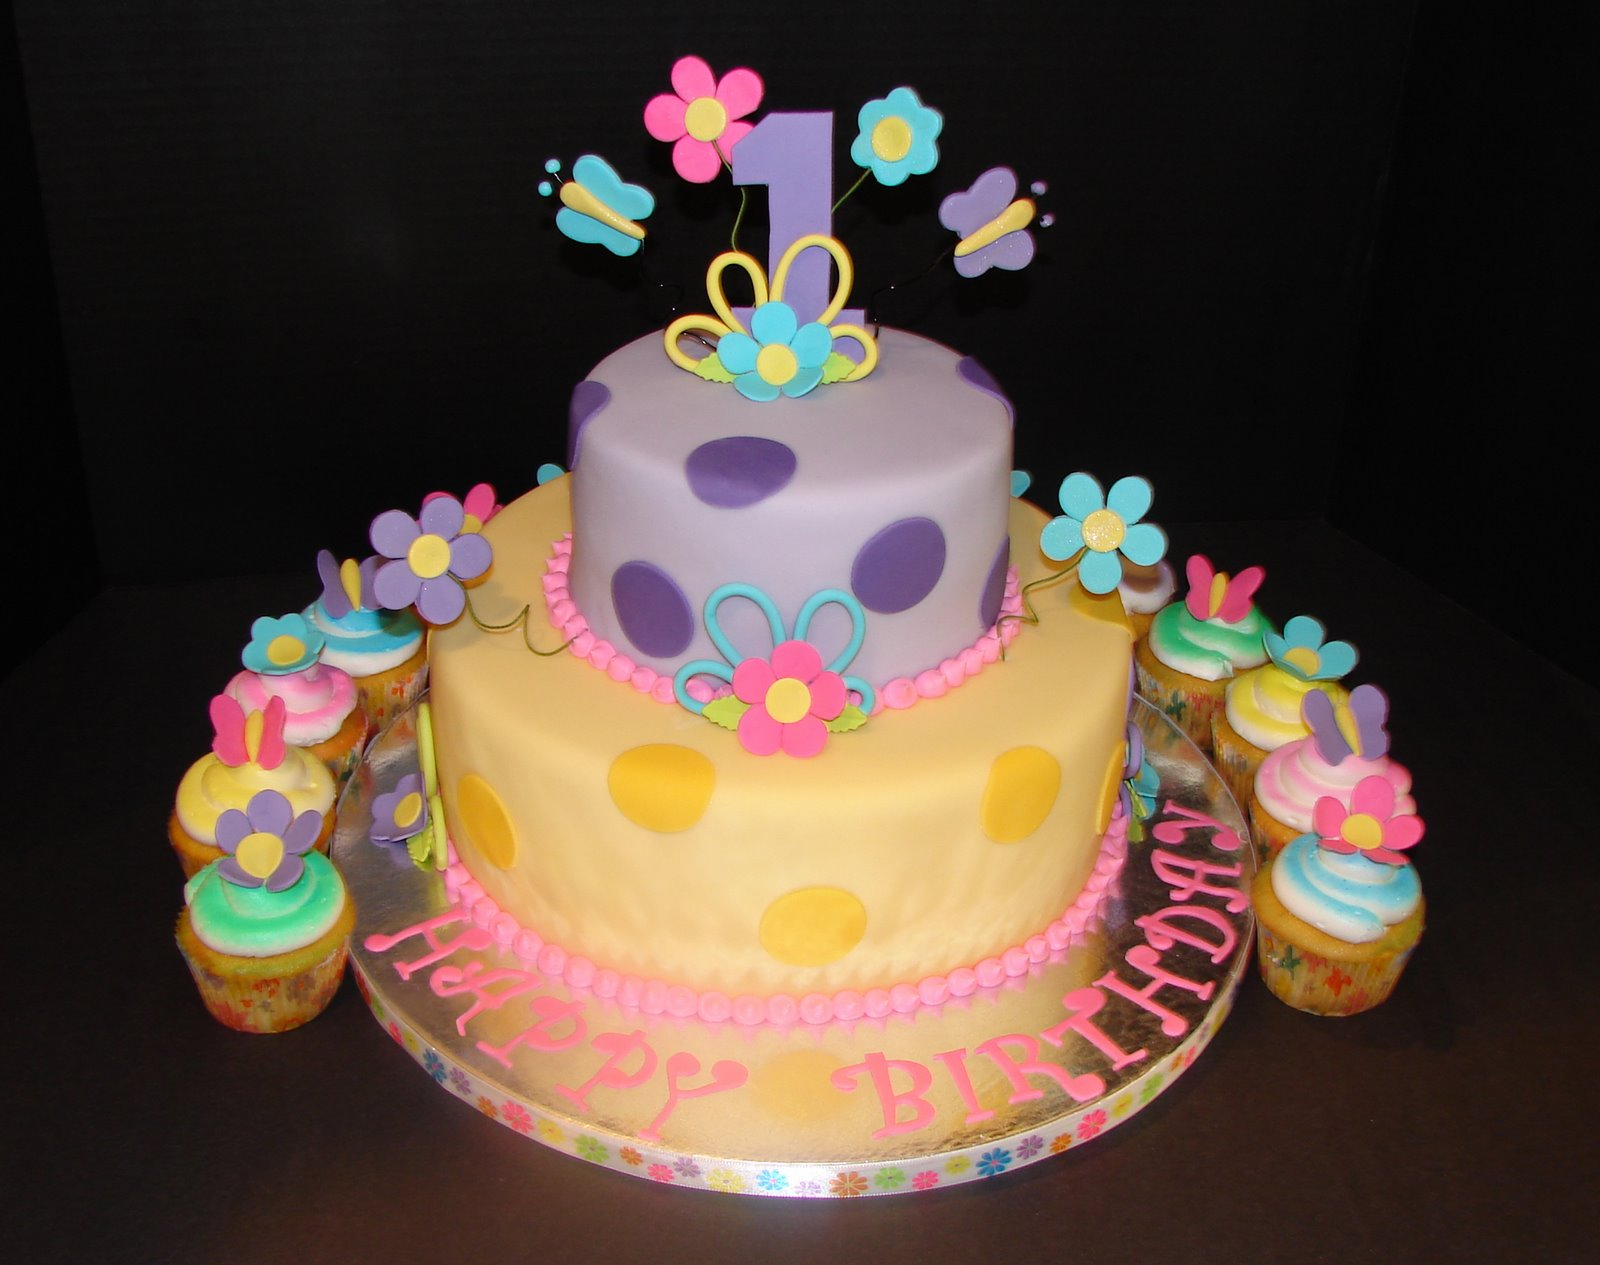 Cake Designs 1st Birthday : Birthday Cake Images for Girls Clip Art Pictures Pics with ...